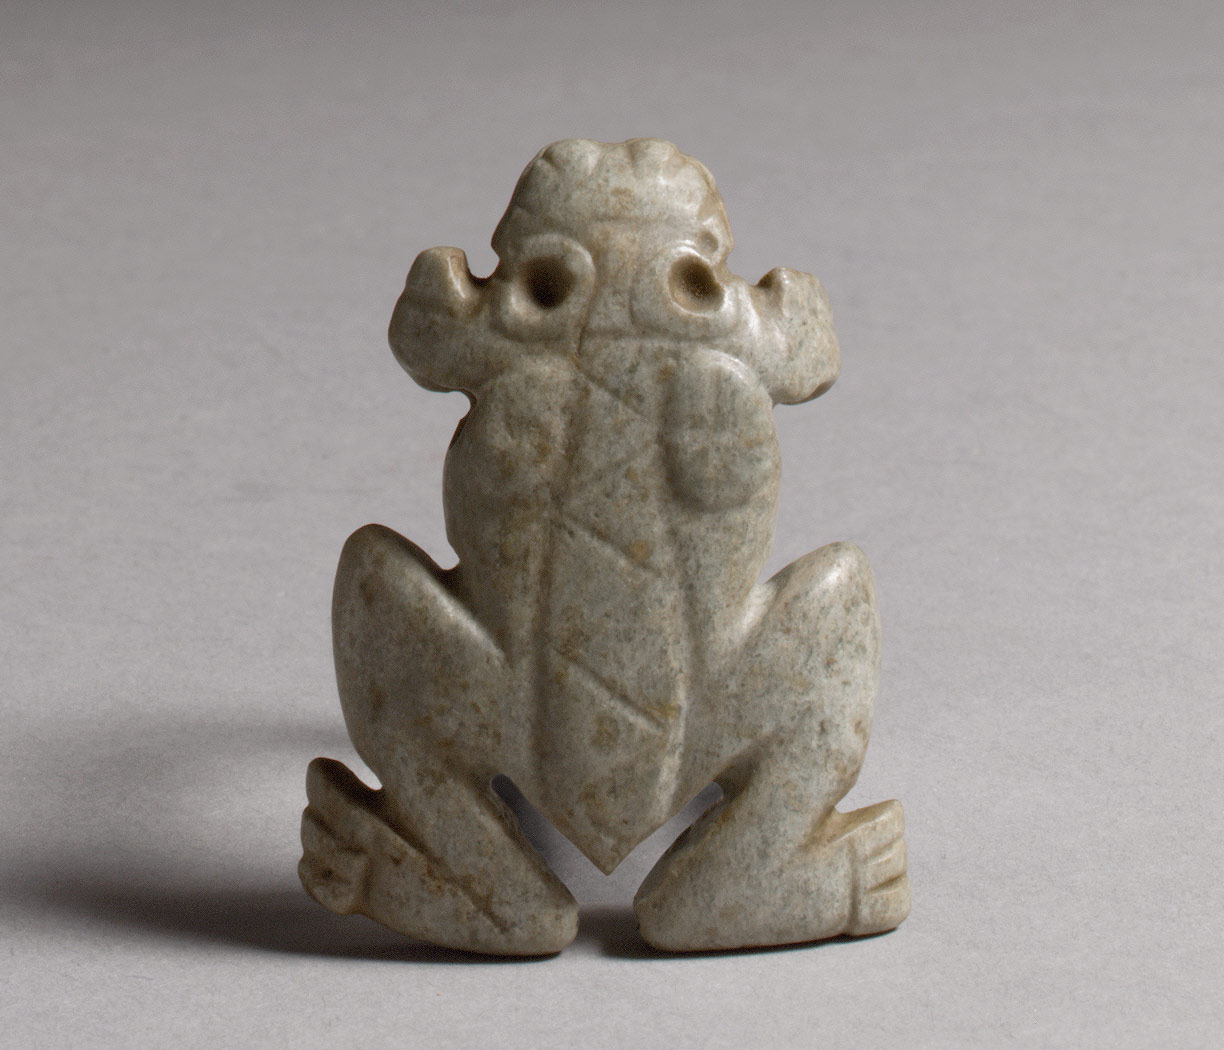 Frog pendant work of art heilbrunn timeline of art history frog pendant mozeypictures Image collections